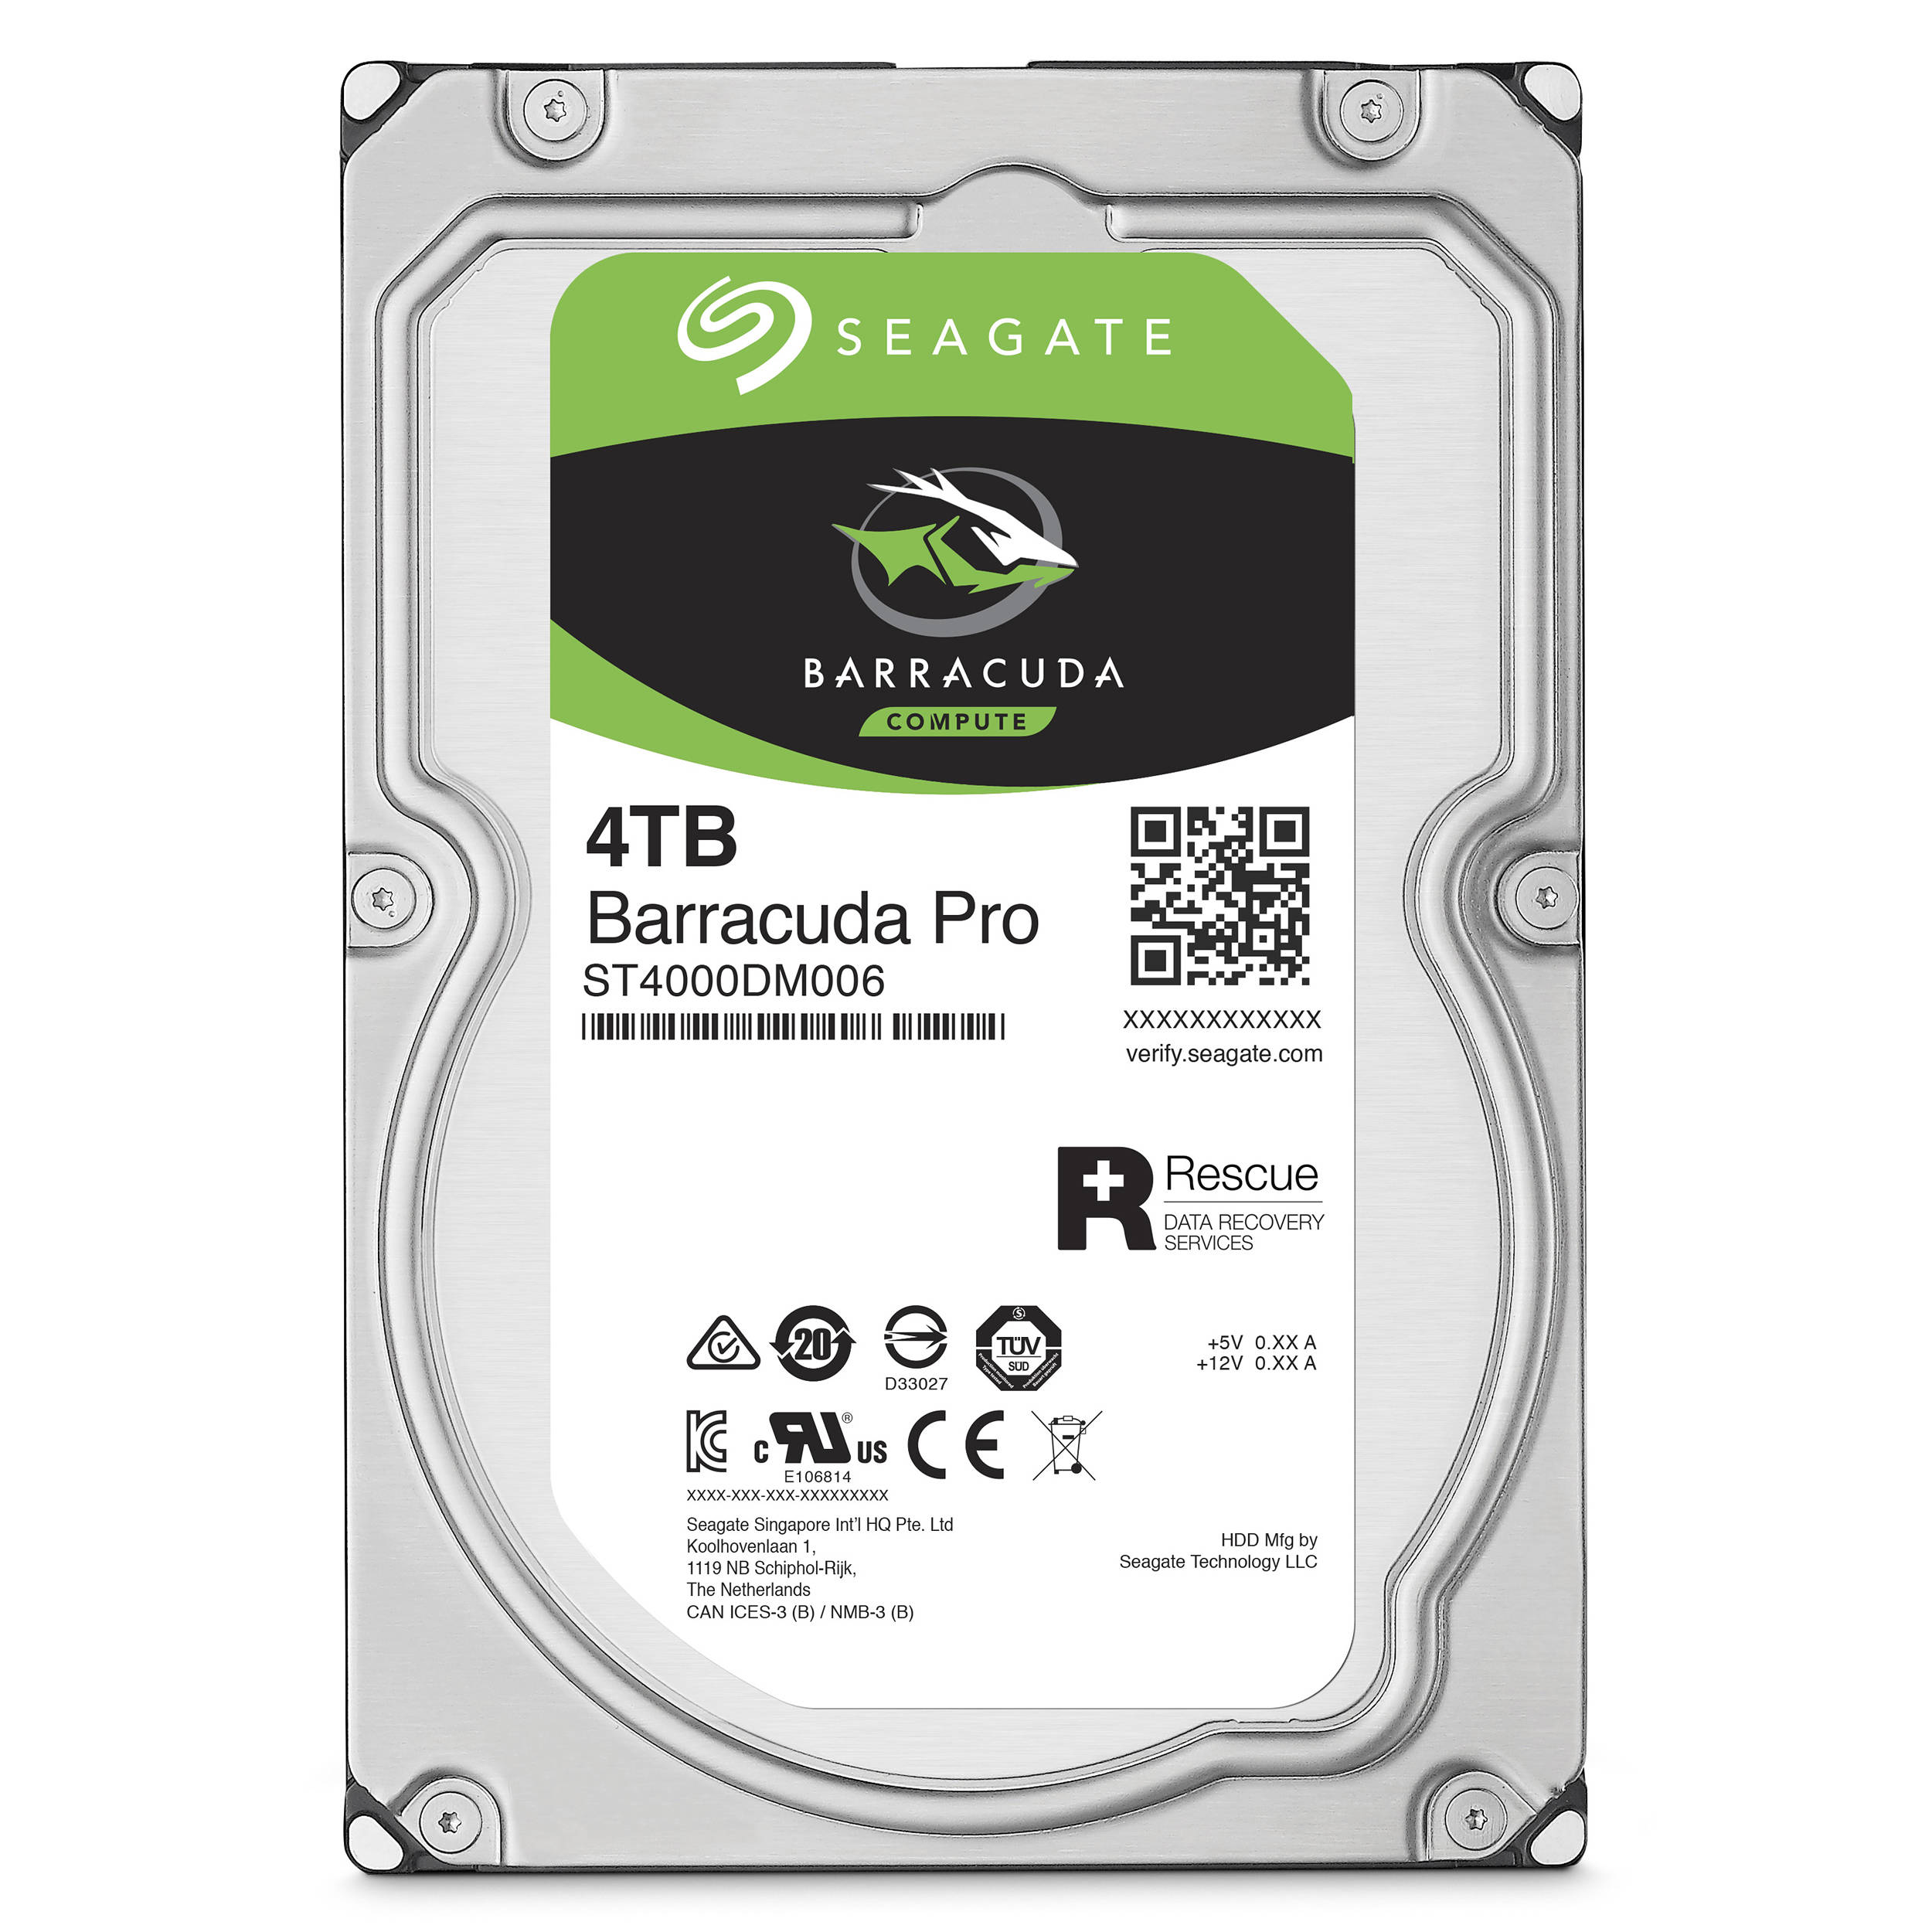 Tim uses Seagate's Barracuda HDD with 4 TB of space